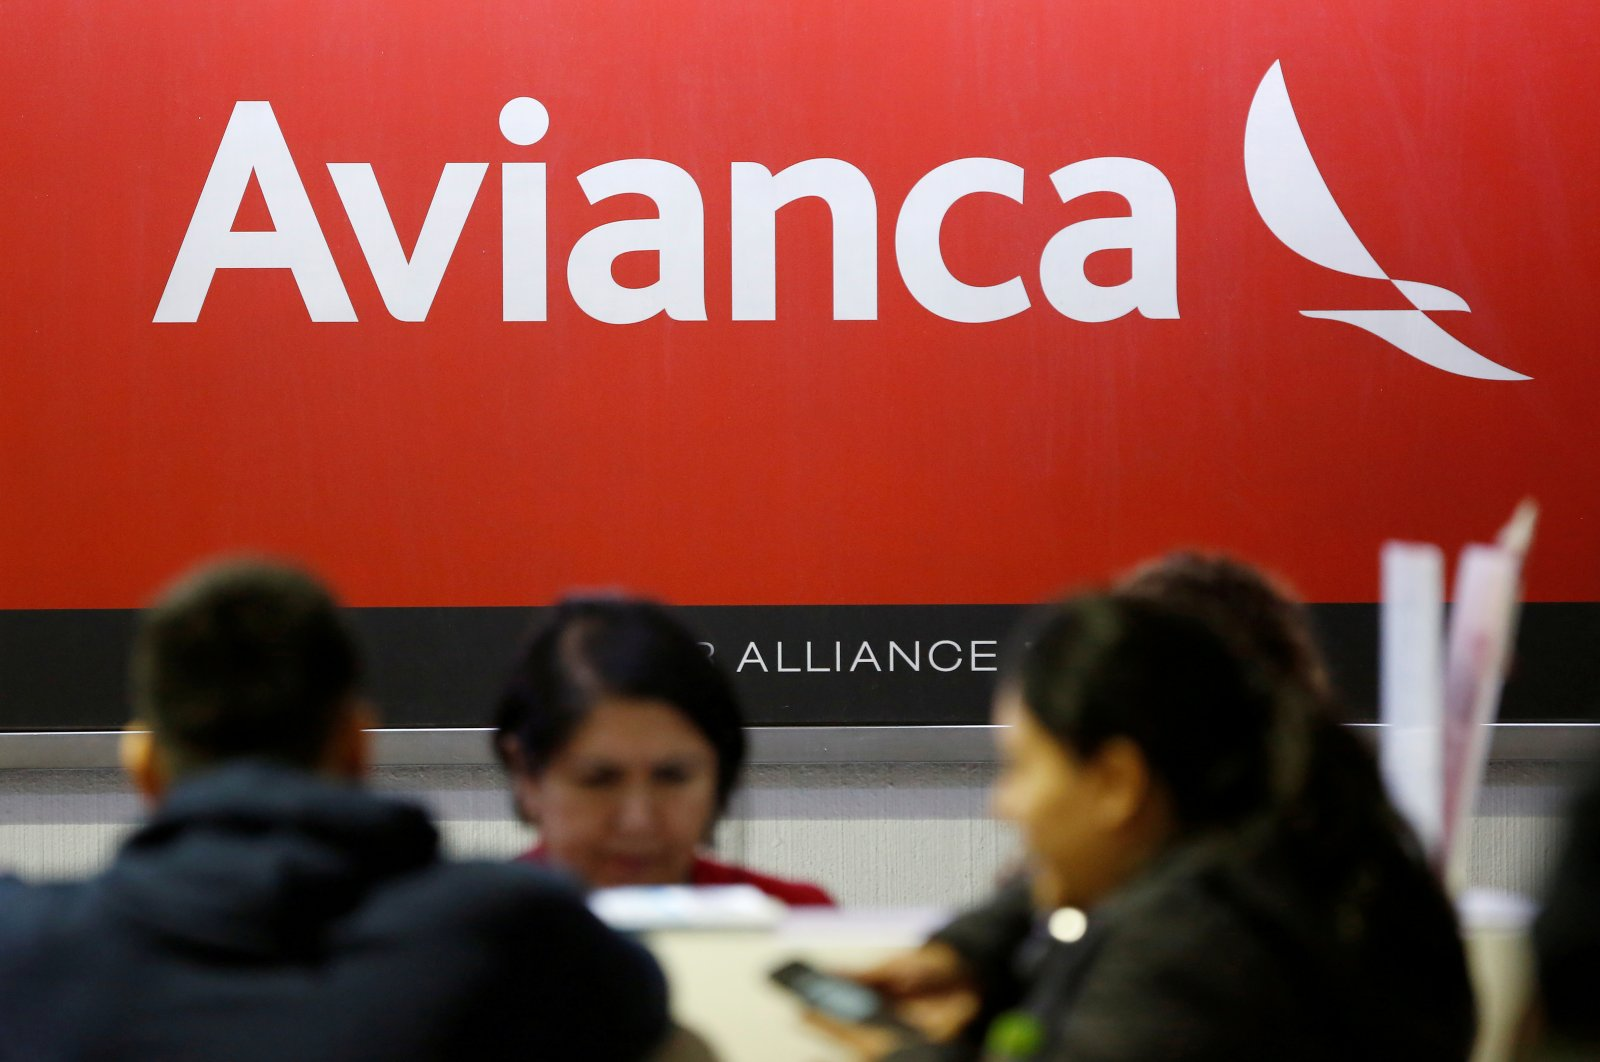 The logo of Avianca Airlines is pictured at a counter following the cancellation of Avianca flight 431, after El Salvador's President Nayib Bukele accused Mexico of allowing a dozen confirmed coronavirus (COVID-19) cases to board the flight due to leave Mexico City for San Salvador, at the Benito Juarez International Airport in Mexico City, Mexico, March 16, 2020.  (Reuters File Photo)